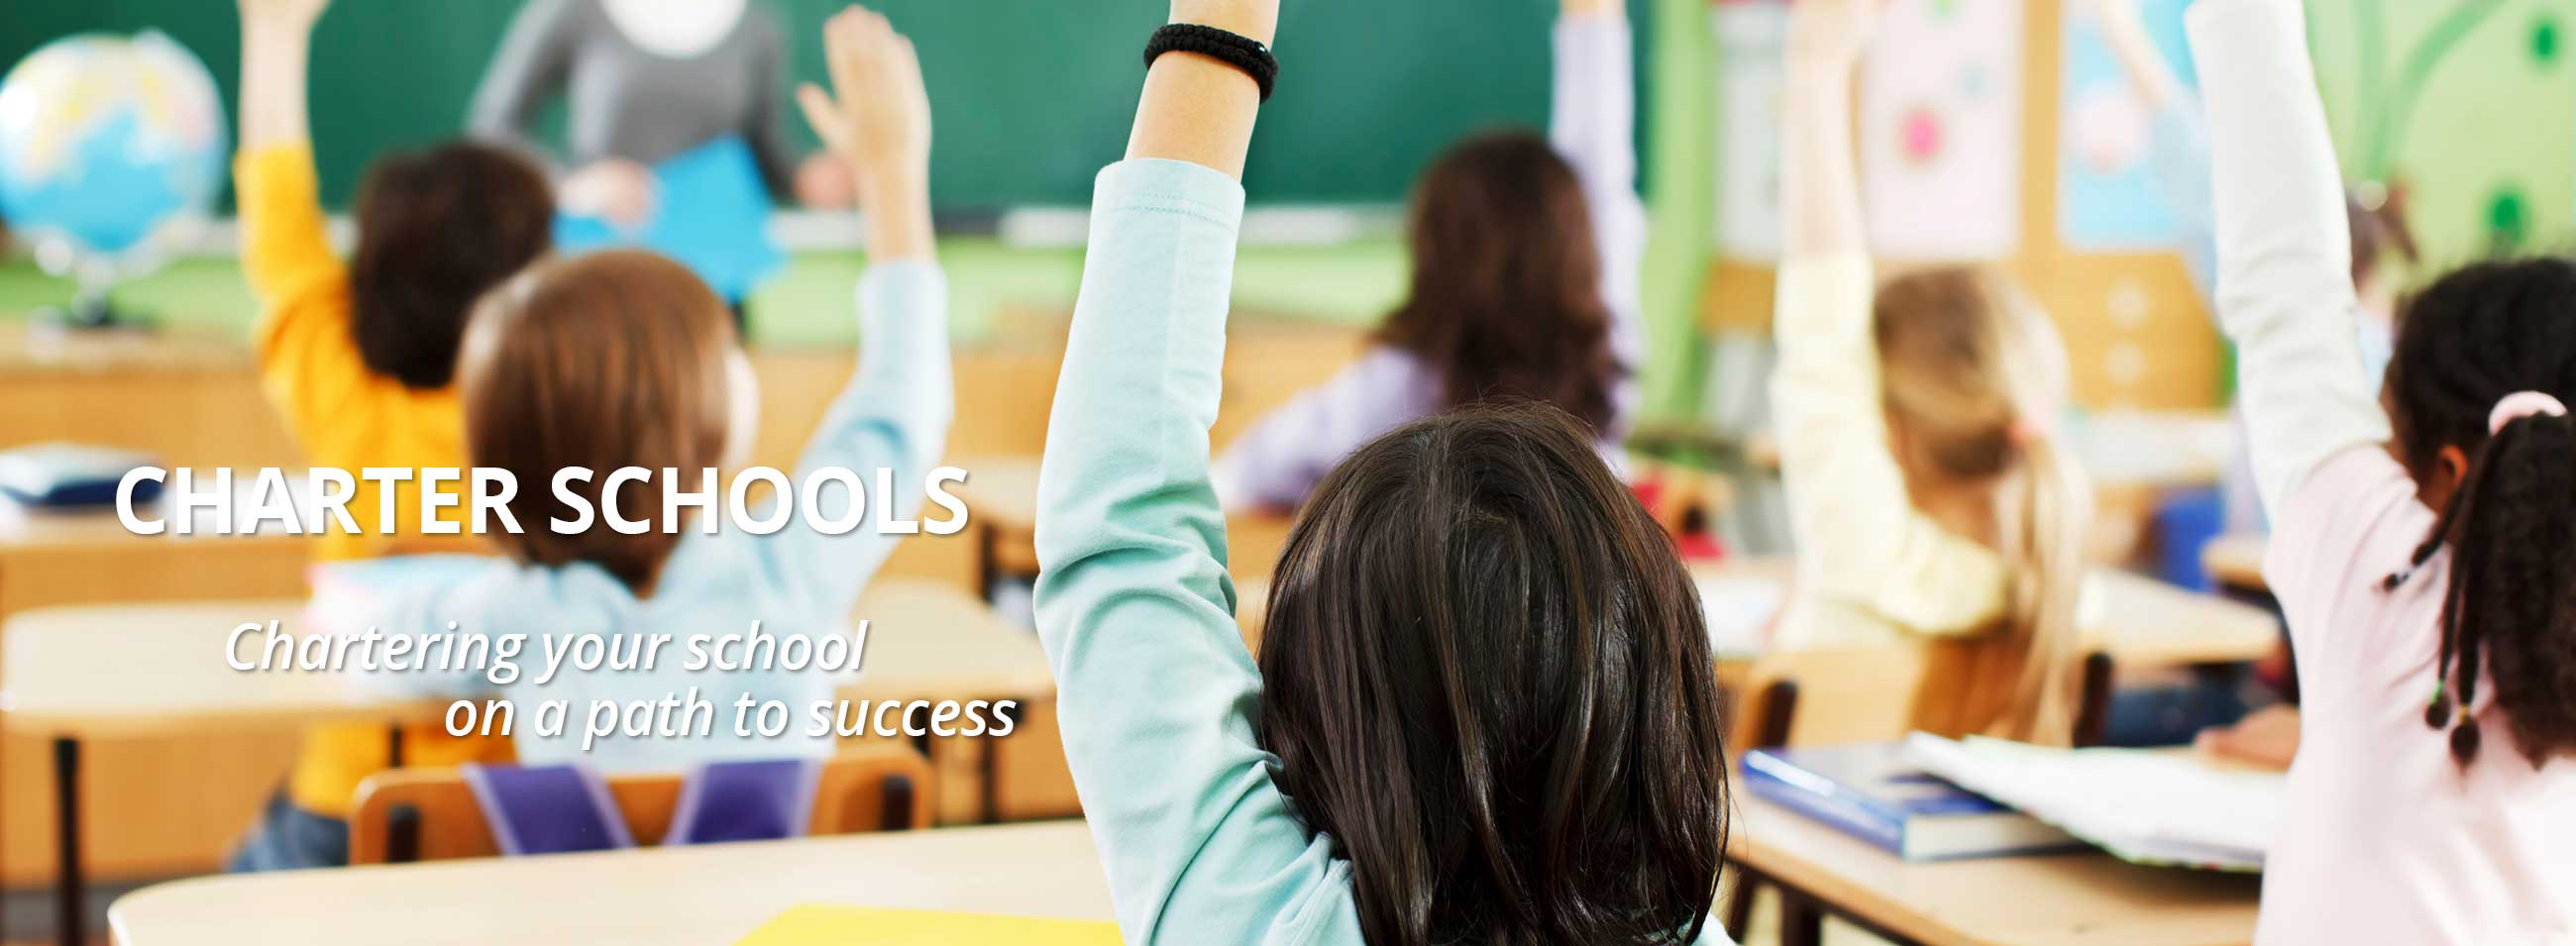 Charter Schools - Nonprofit CPA Firm